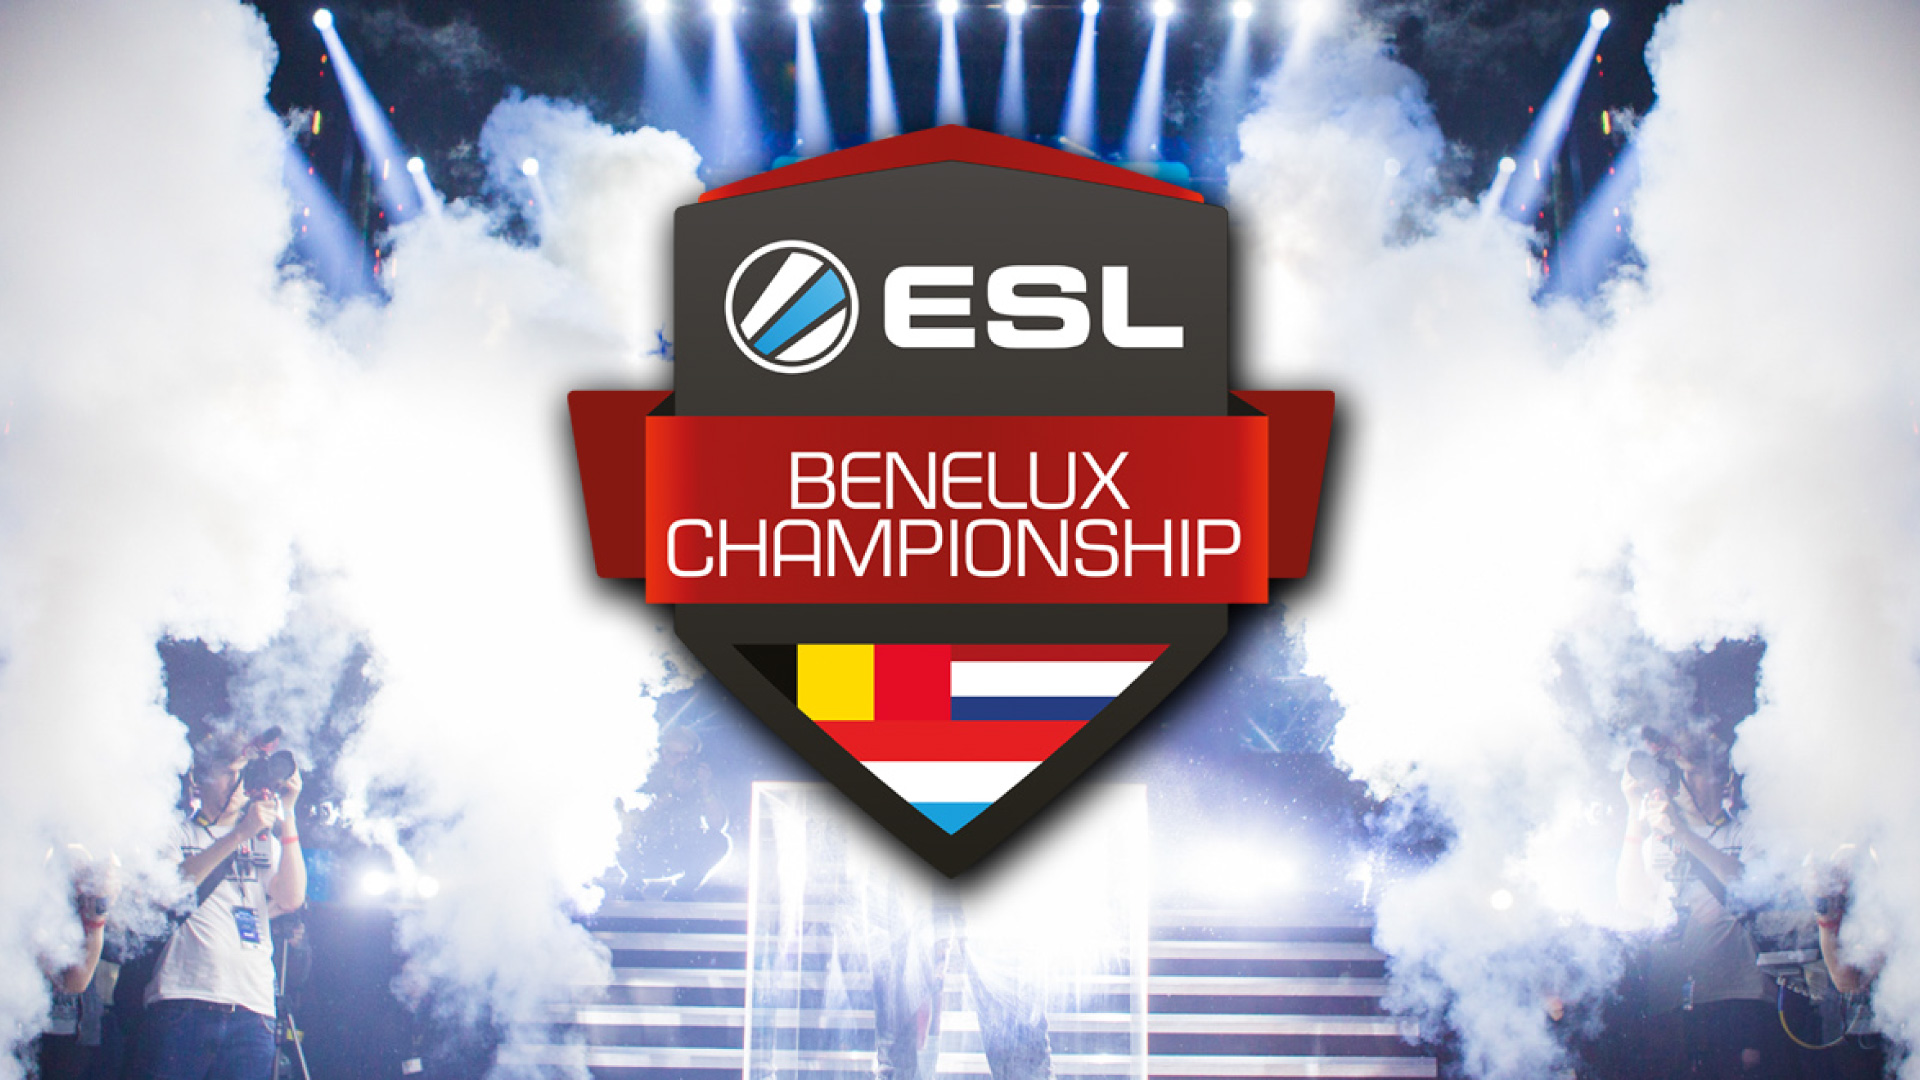 On April 26, we will see the game between Lyngby Vikings and AsProject Eversio as part of the ESL Benelux Championship: Summer 2021 group stage